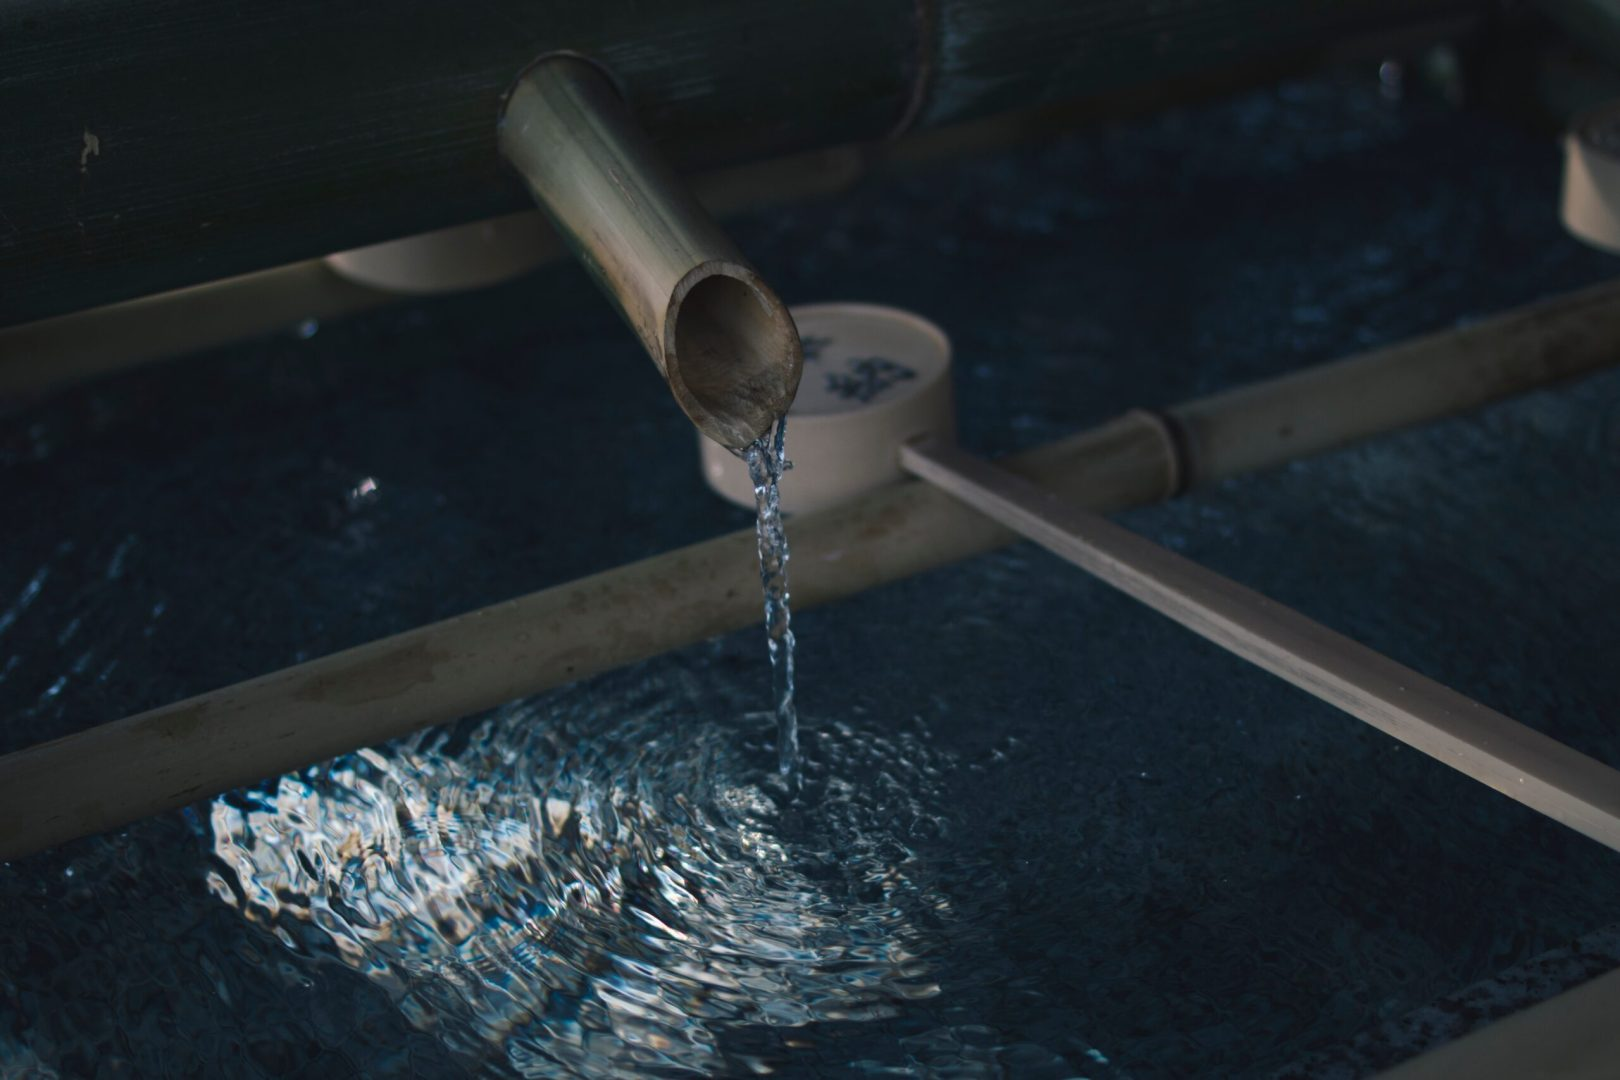 How Your Business Can Improve Its Water Usage